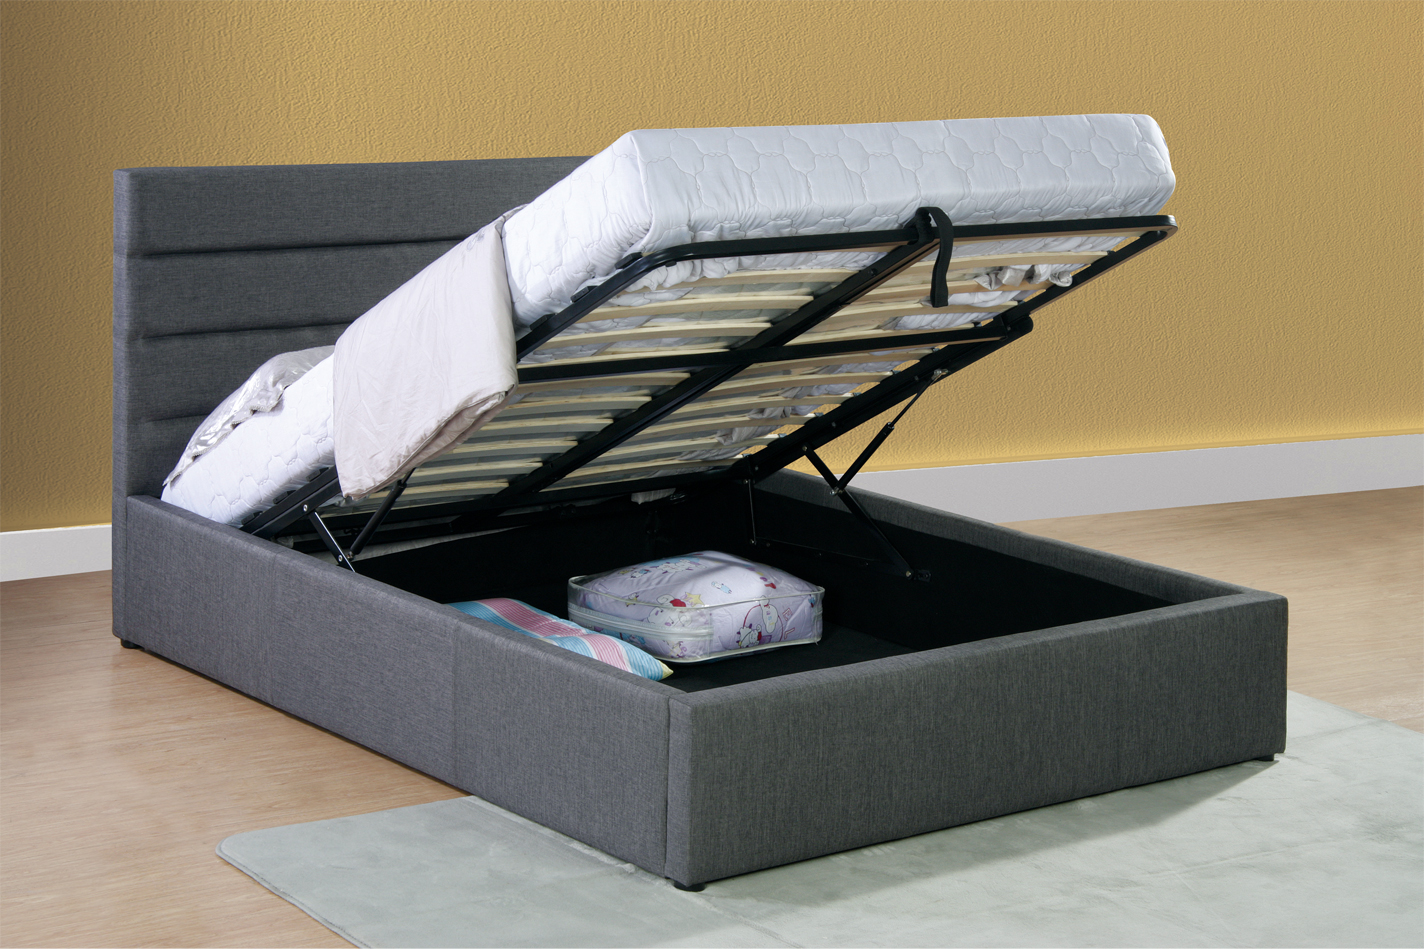 Lift Up Beds Storage : Luxury grey fabric lift up storage bed frame ft double